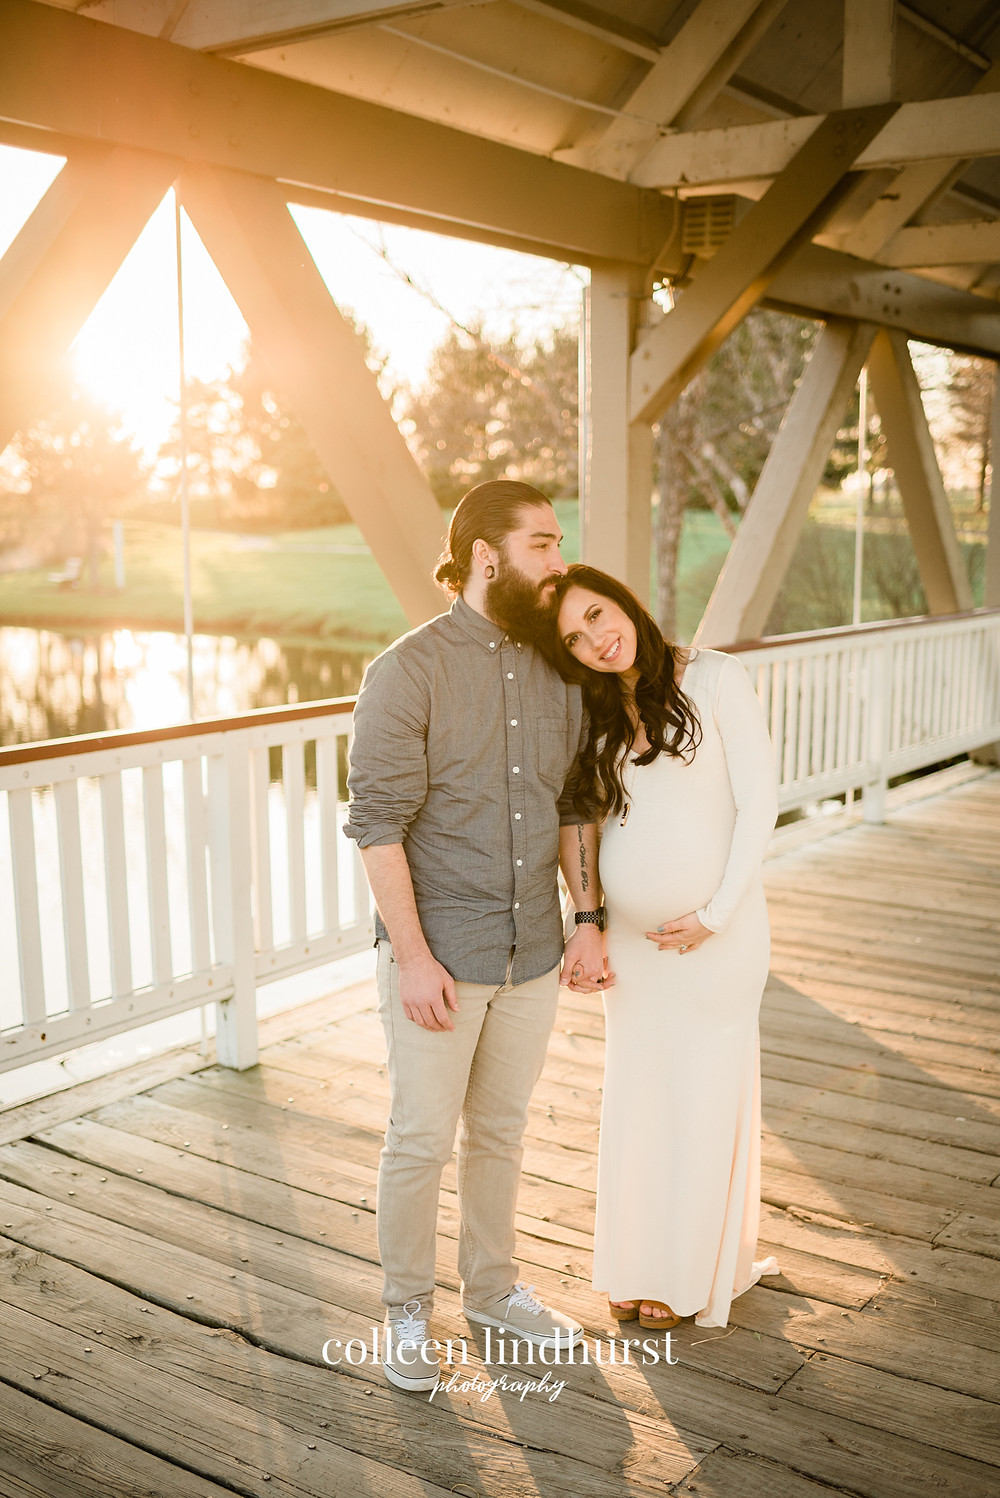 maternity photography outdoor | columbus ohio photographer | colleen lindhurst photography